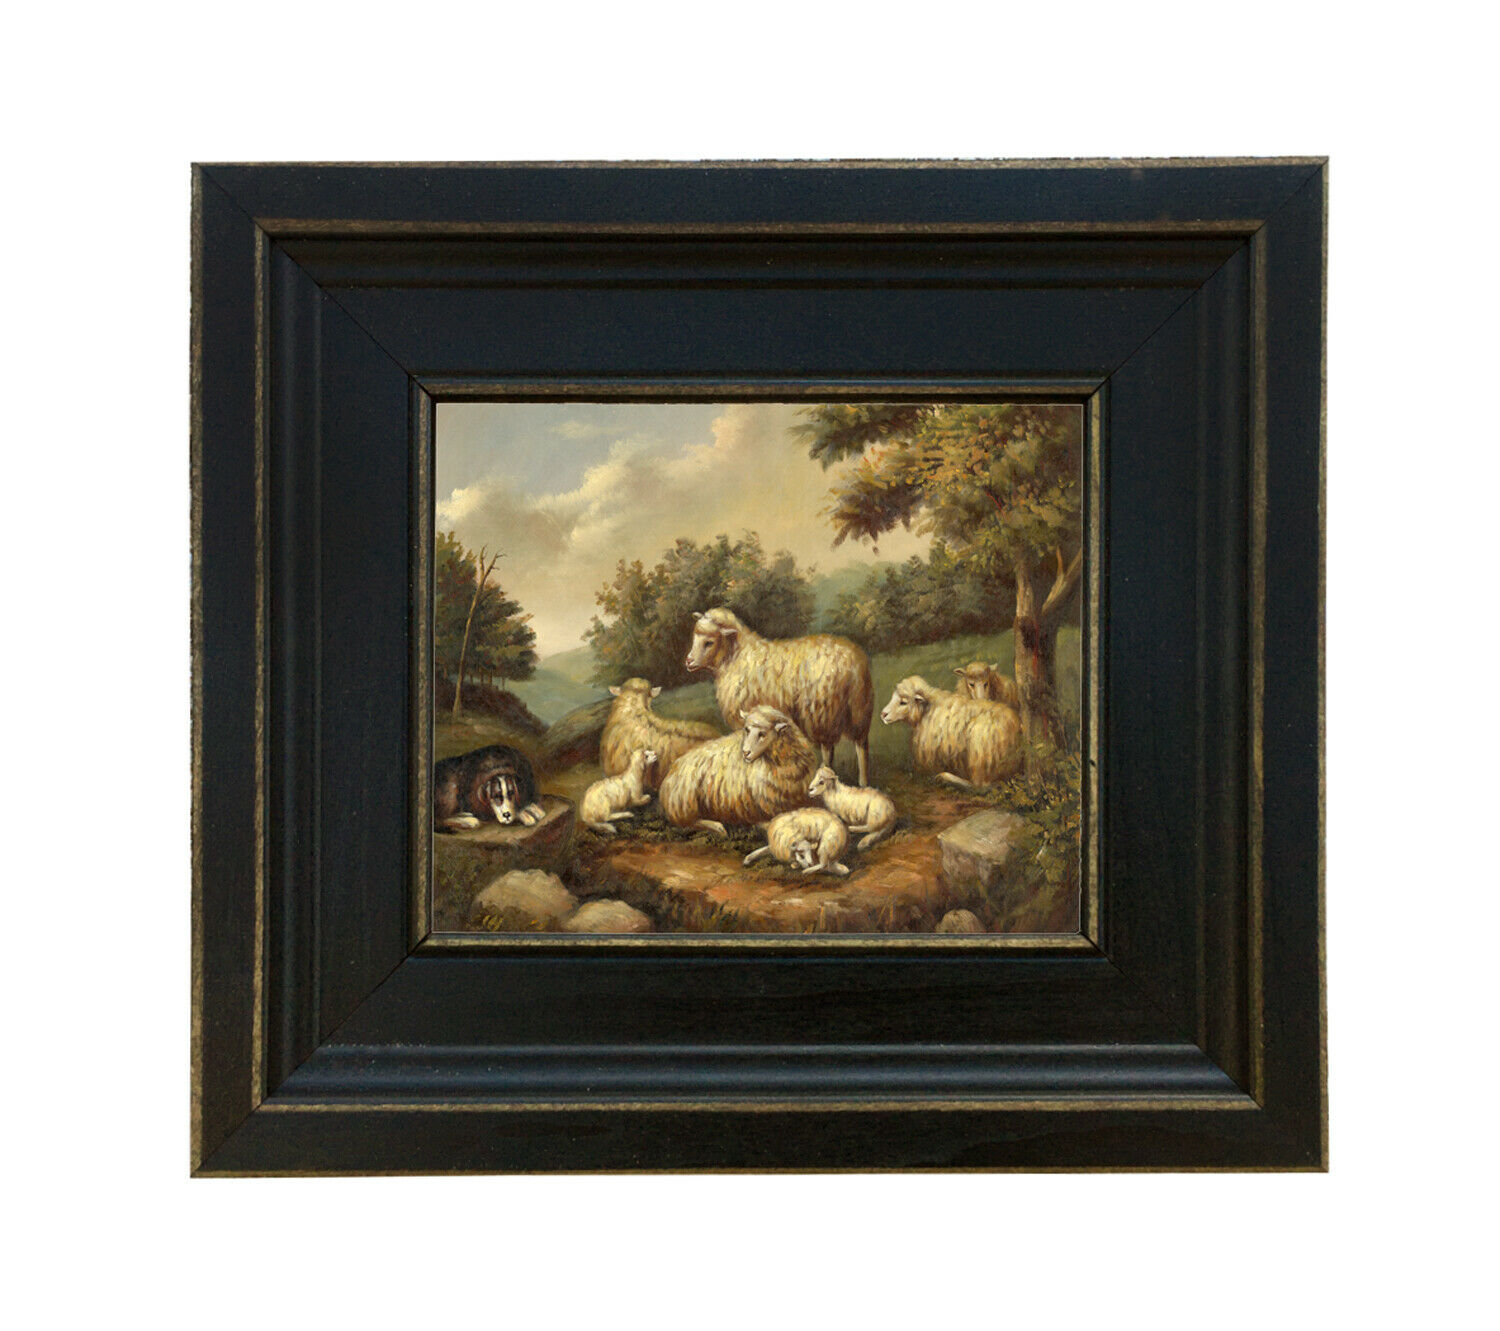 Sheep In Landscape Vintage Antique Farmhouse Style Painting Print Canvas Framed 2